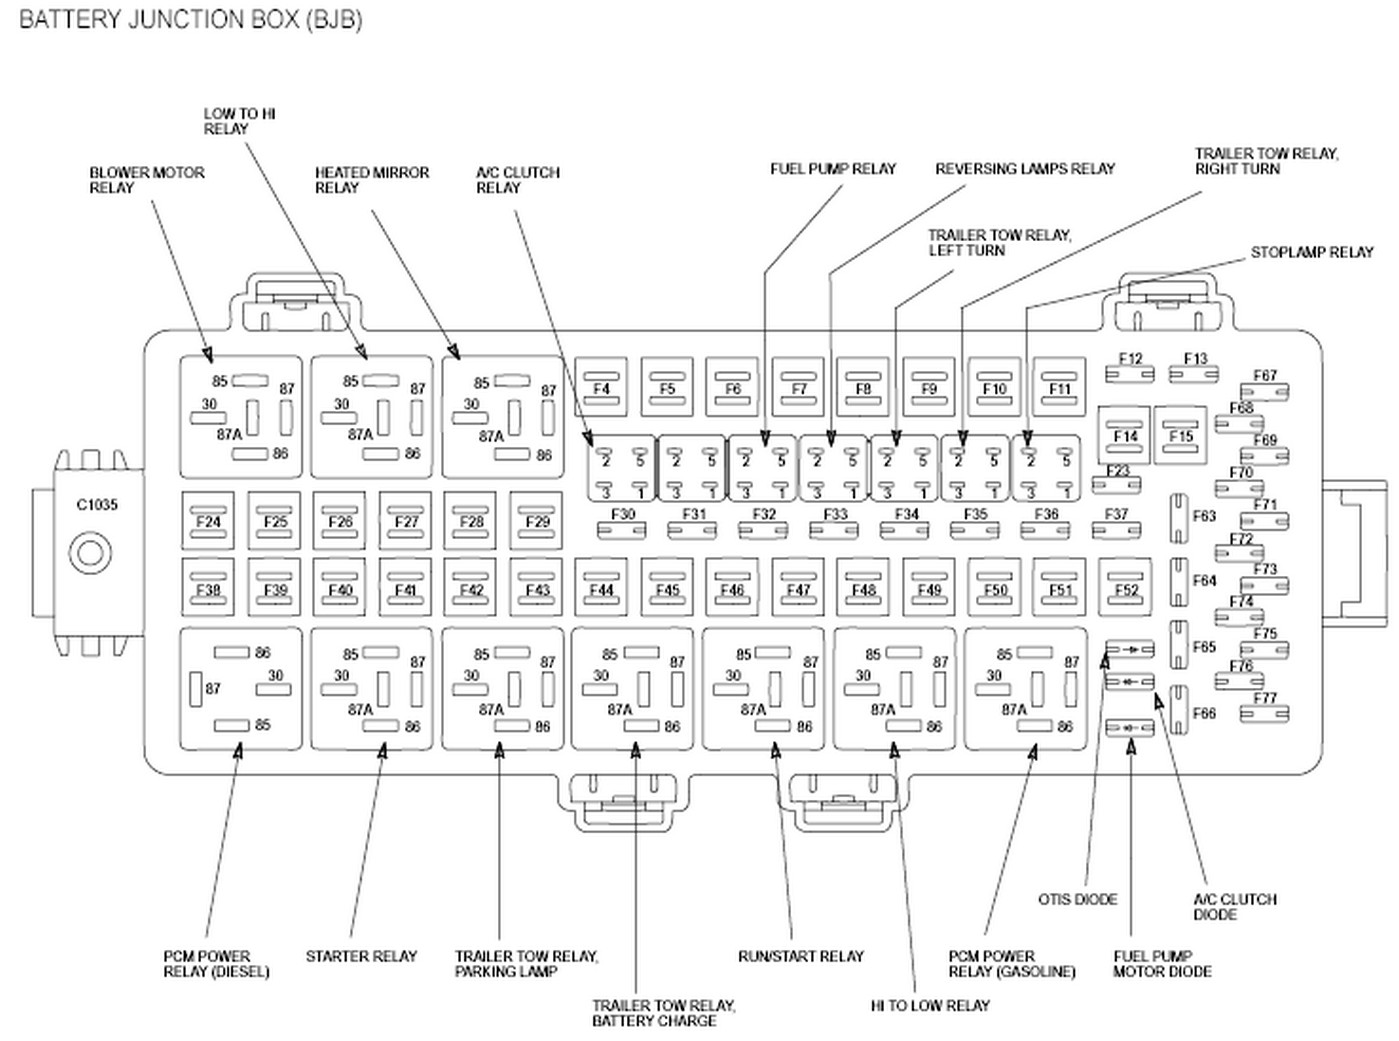 2011 ford f250 fuse box diagram Zoinyhu 2012 f250 fuse box location 2009 ford fusion fuse box diagram 2012 ford edge fuse box diagram at cos-gaming.co